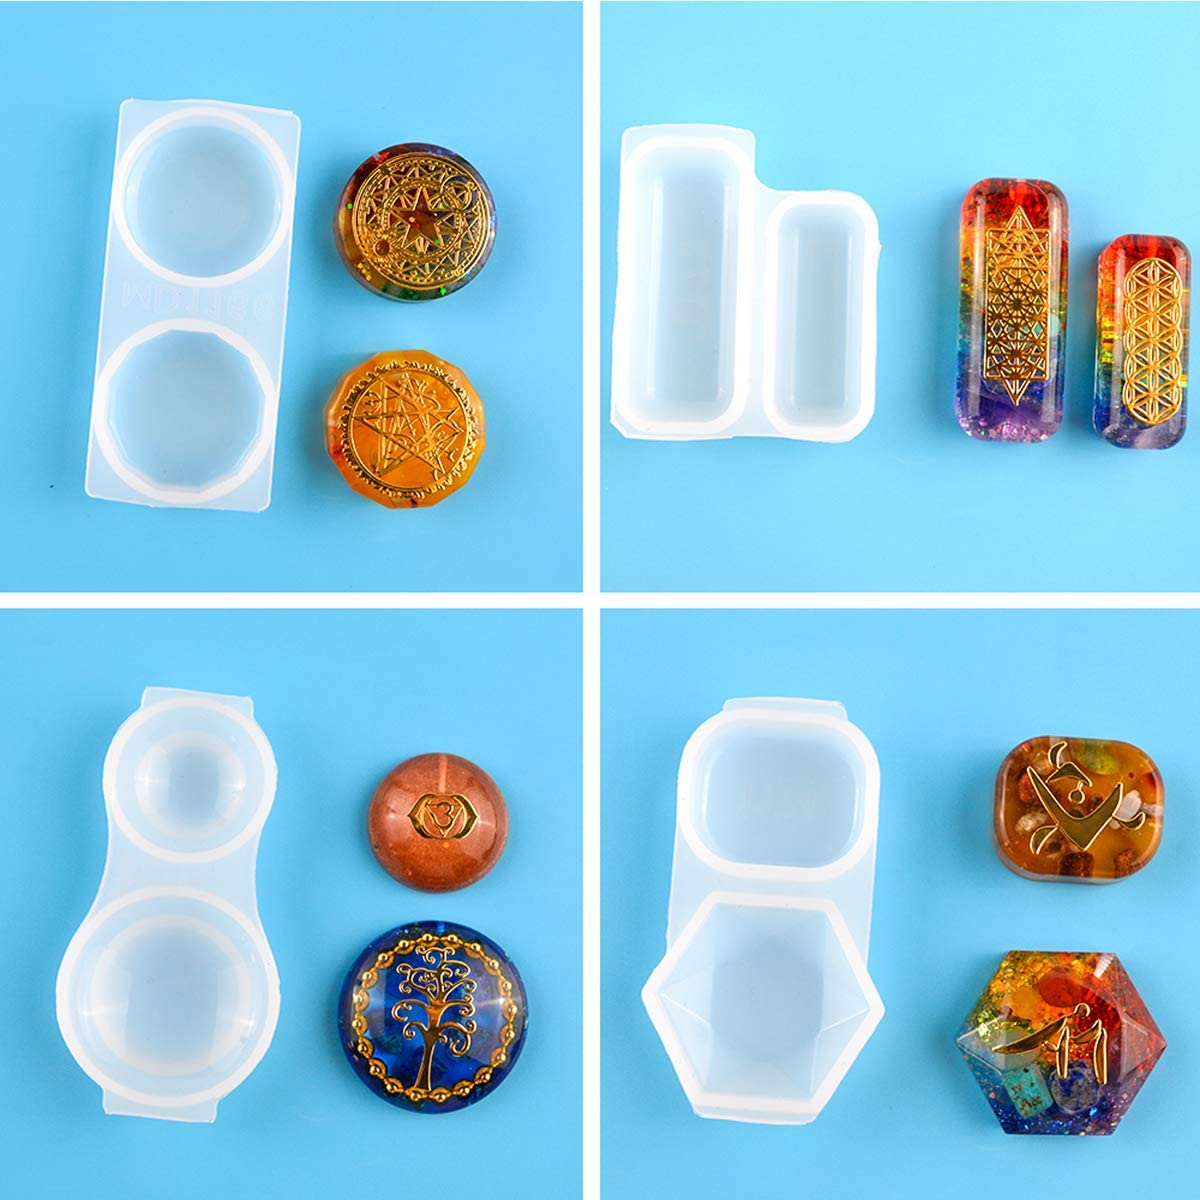 Square Round Jewelry Craft Moulds for Making Necklace Bracelet Craft DIY Resin Casting Molds Epoxy Resin Mold HQdeal 4 Pack Silicone Resin Moulds for Pendant Jewelry Making